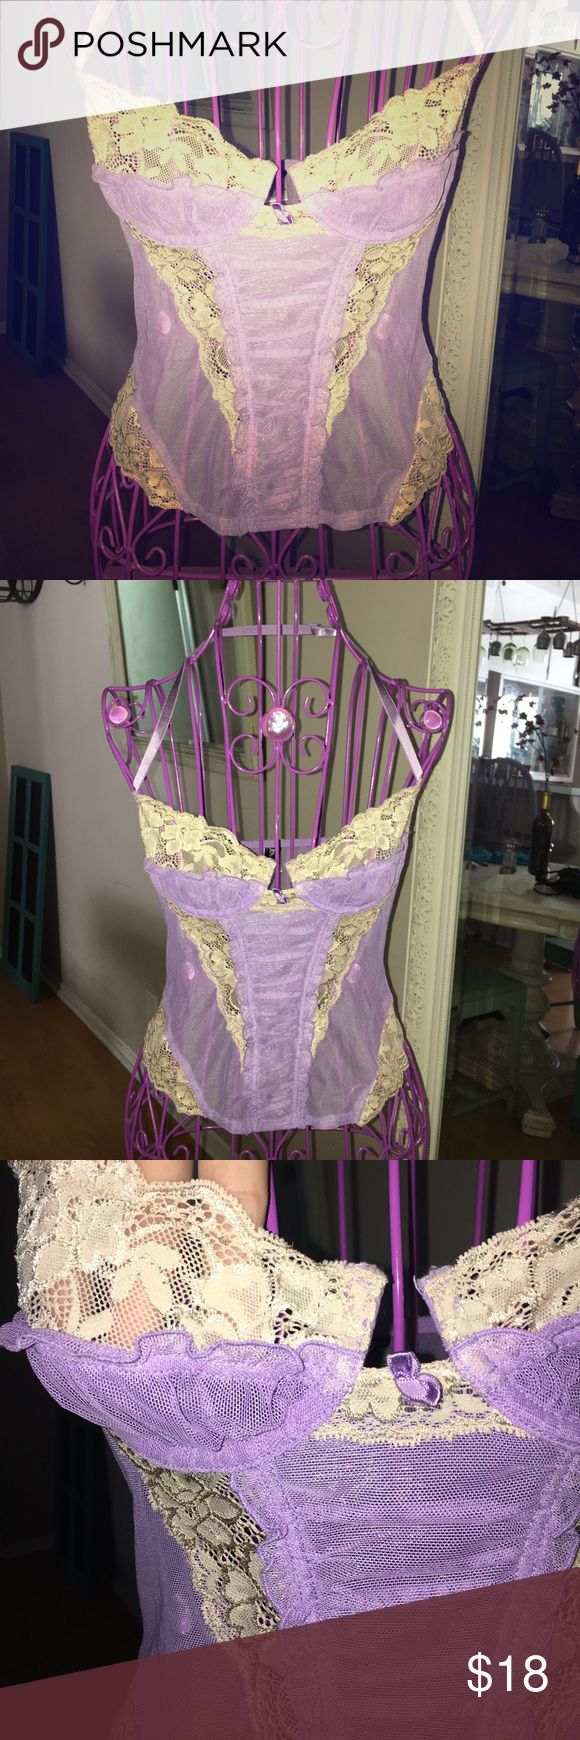 Sheer Lavender Nude Lace Victorian Bustier Absolutely gorgeous Bustier in a lavender color with stunning nude/ cream colored lace accents. Drive him wild in this super sexy and very flirty, good girl gone bad Bustier. Has a sort of Victorian look to it. Excellent pre-loved condition. Labeled size 32. Ideal for a large B or C cup. Feel free to ask any questions and make any offers :] Frederick's of Hollywood Intimates & Sleepwear Bras